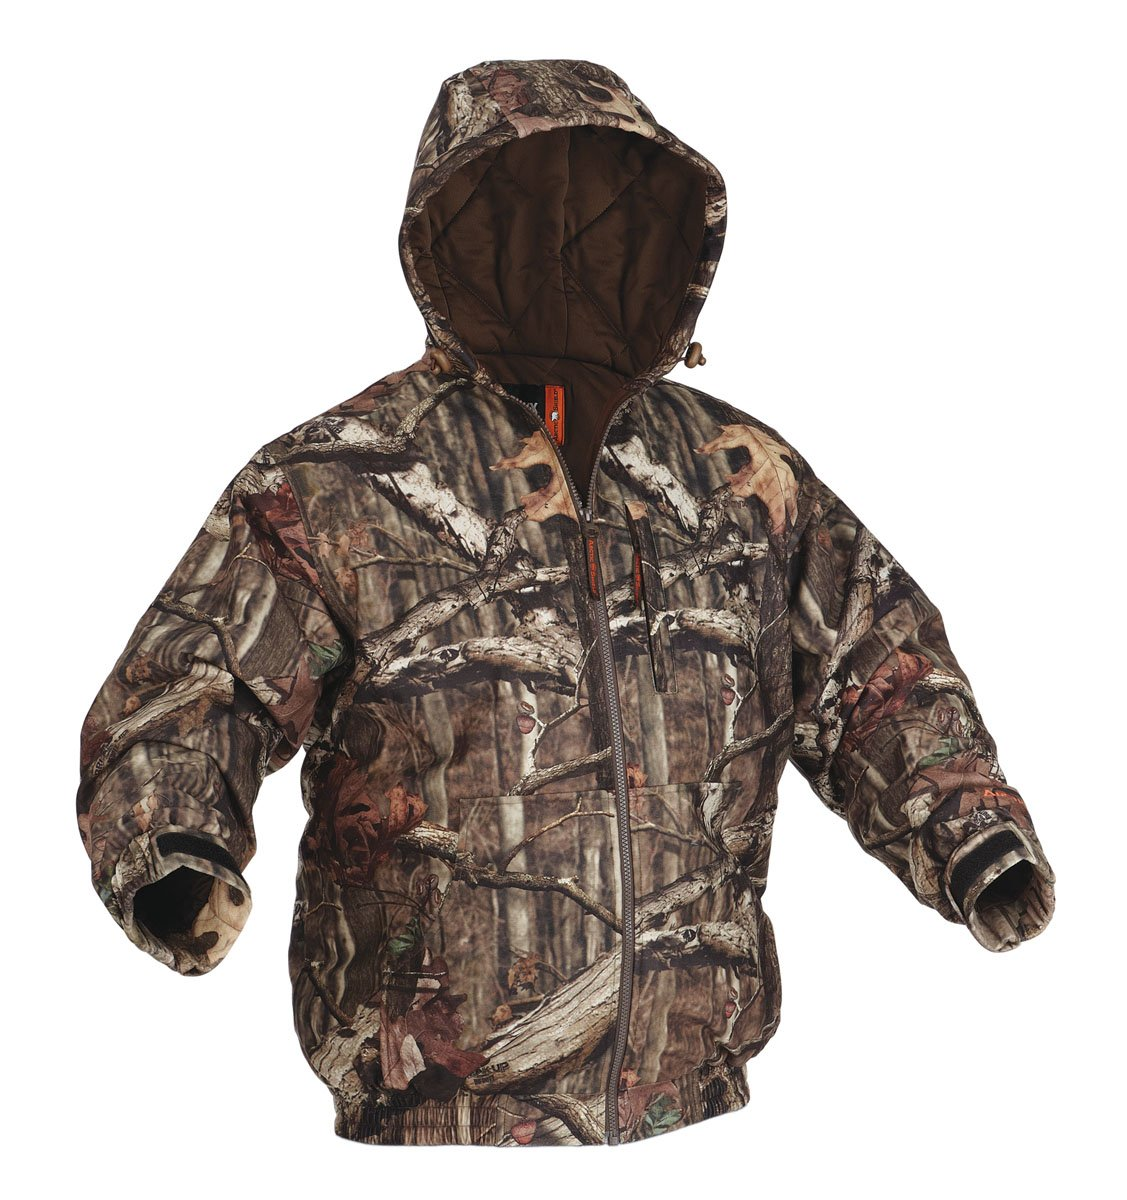 Arcticshield Quiet Tech Jacket Webyshops 4012115